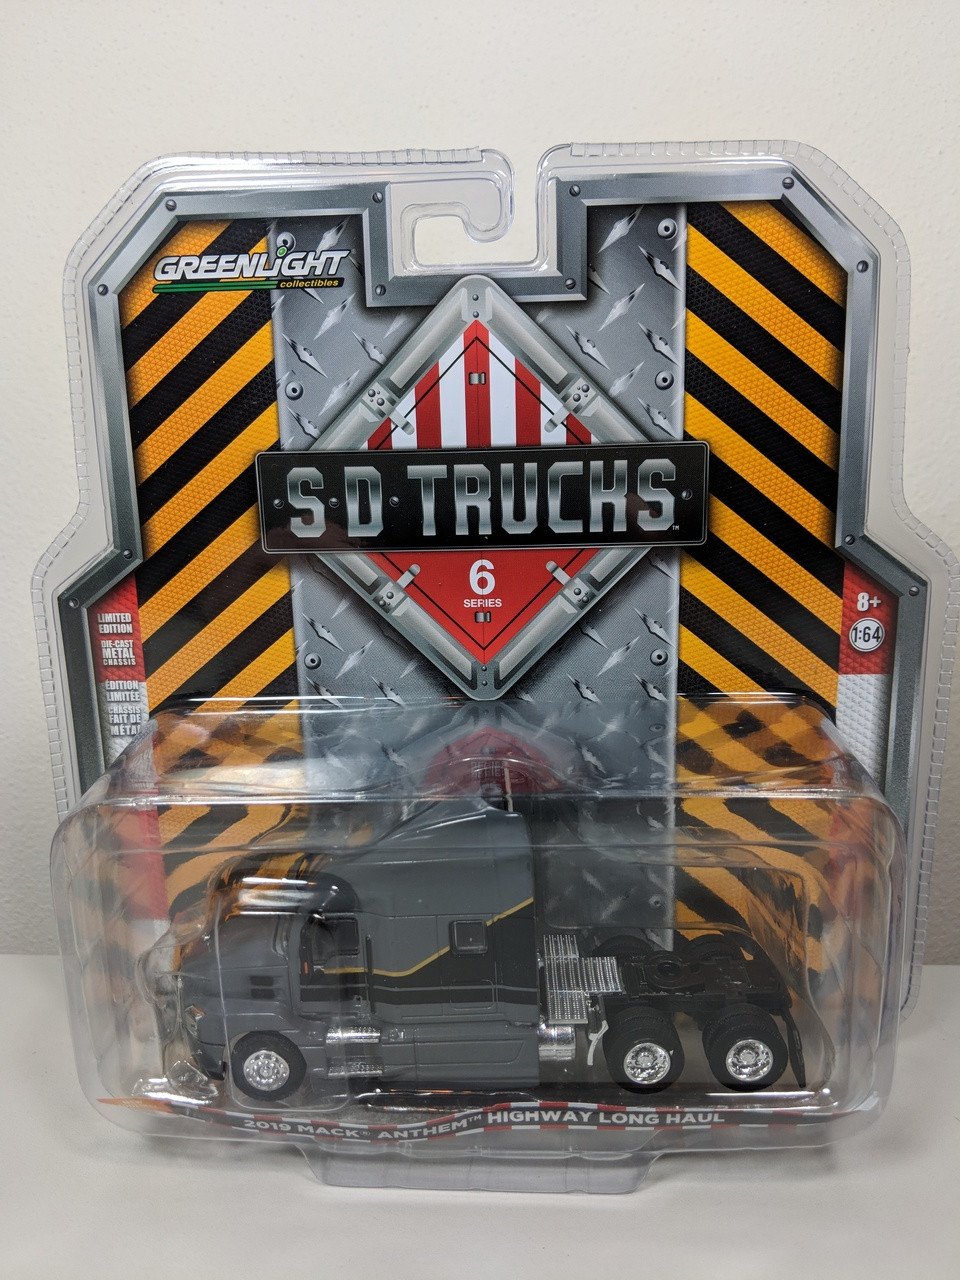 1:64 S D  Trucks Series 6 - 2019 Mack Anthem Truck Cab